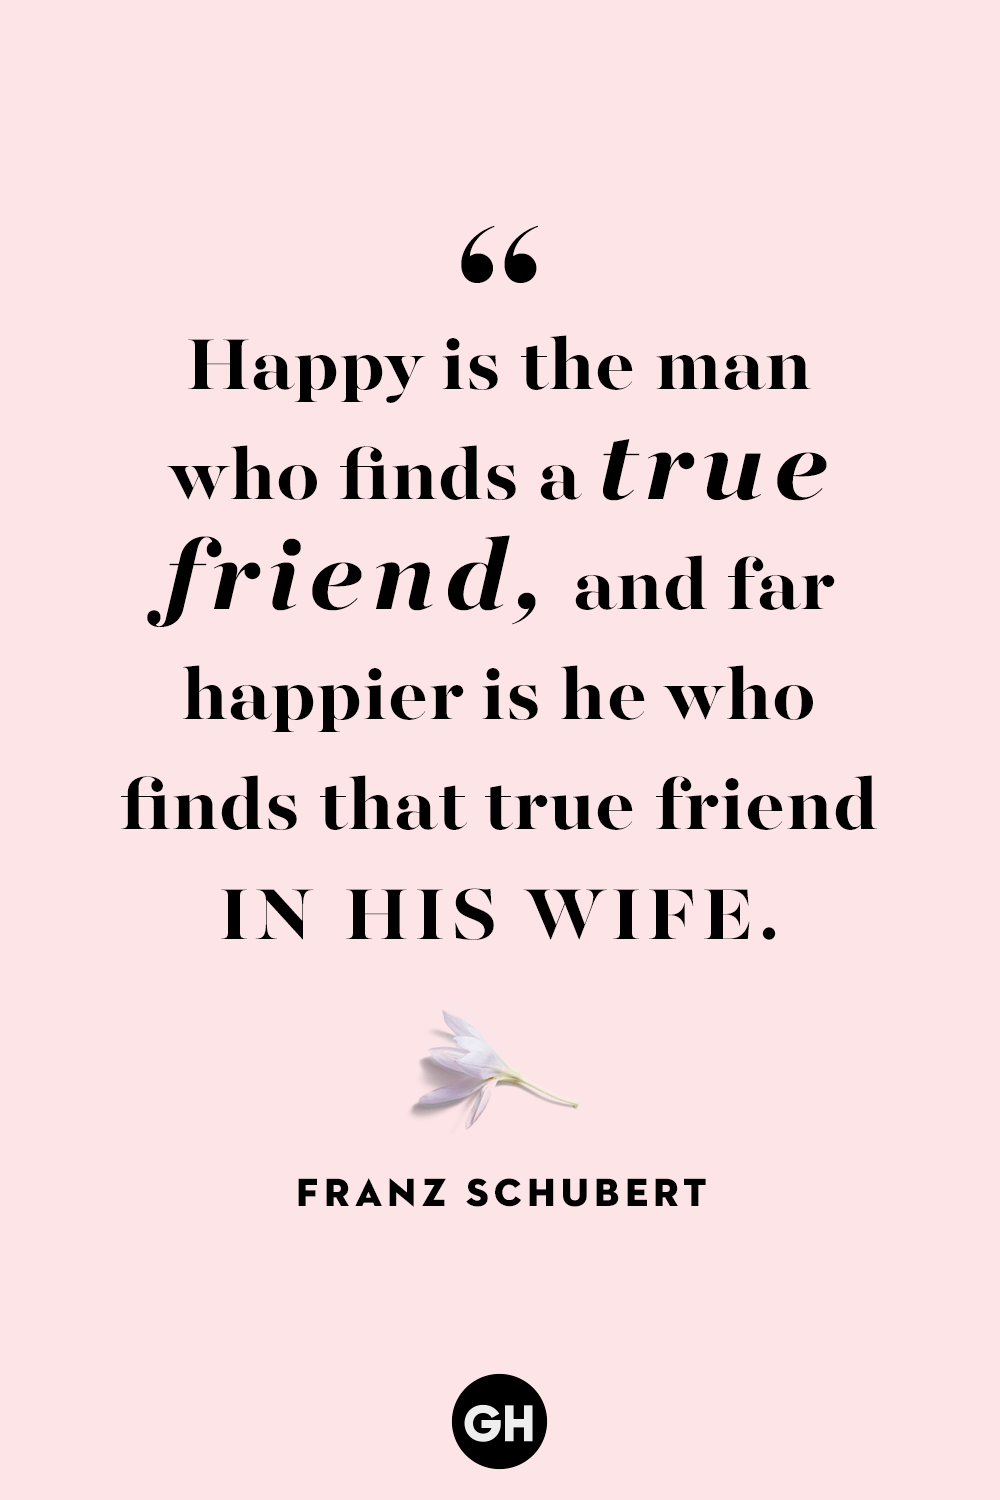 Best Friend Friendship Between Man And Woman Quotes - New ...